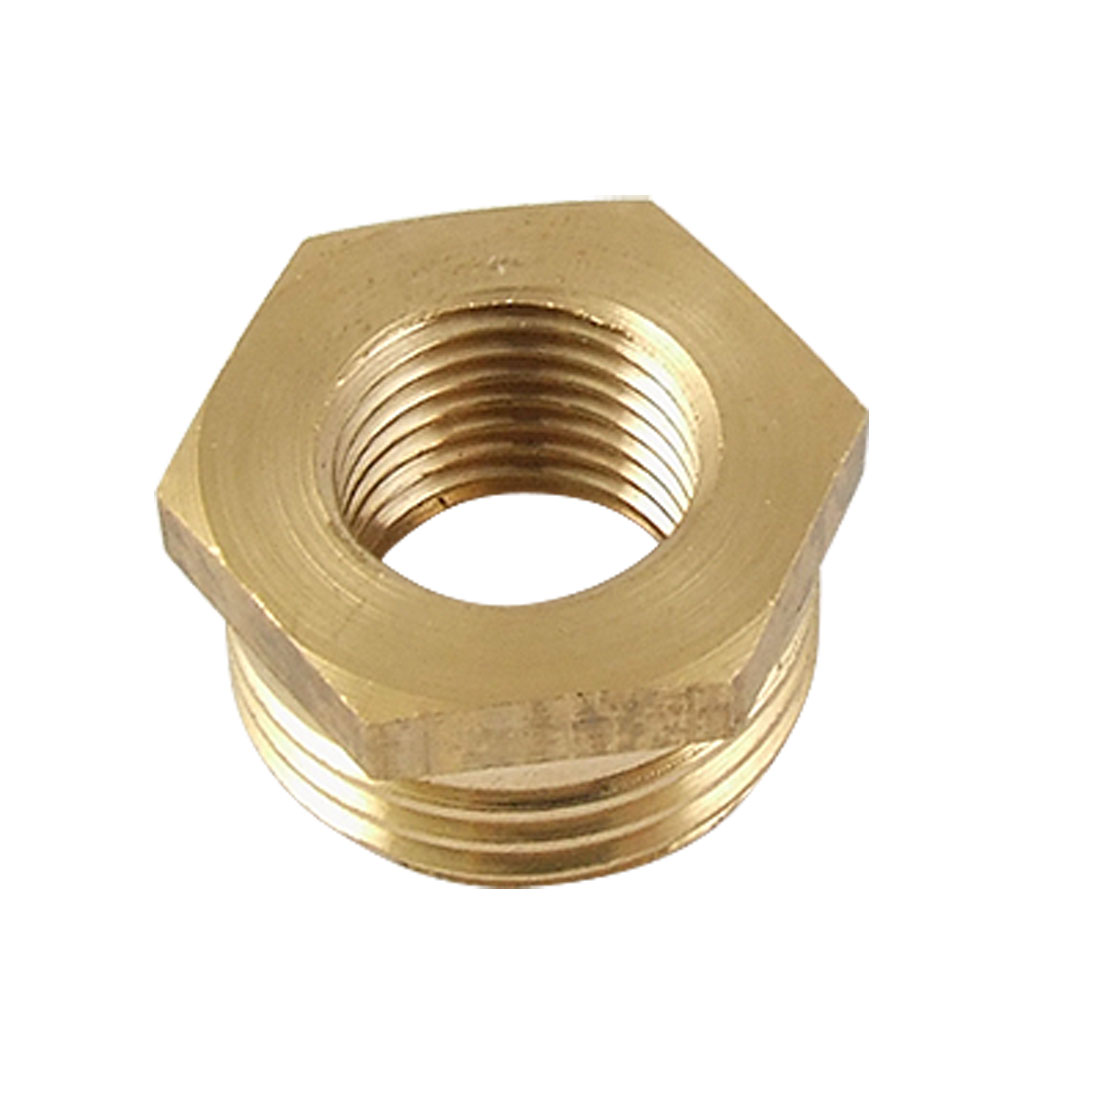 "0.8"" Male 0.46"" Female Thread Pipe Connector Socket Gold Tone"